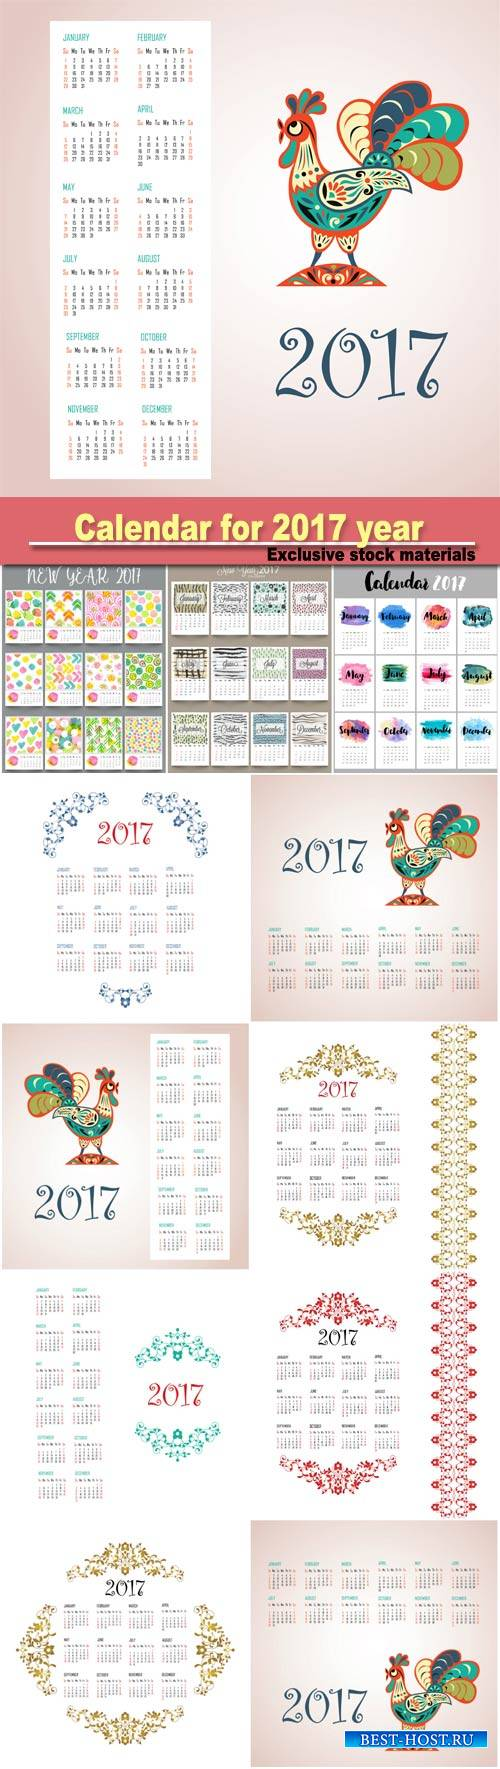 Calendar design for New Year 2017